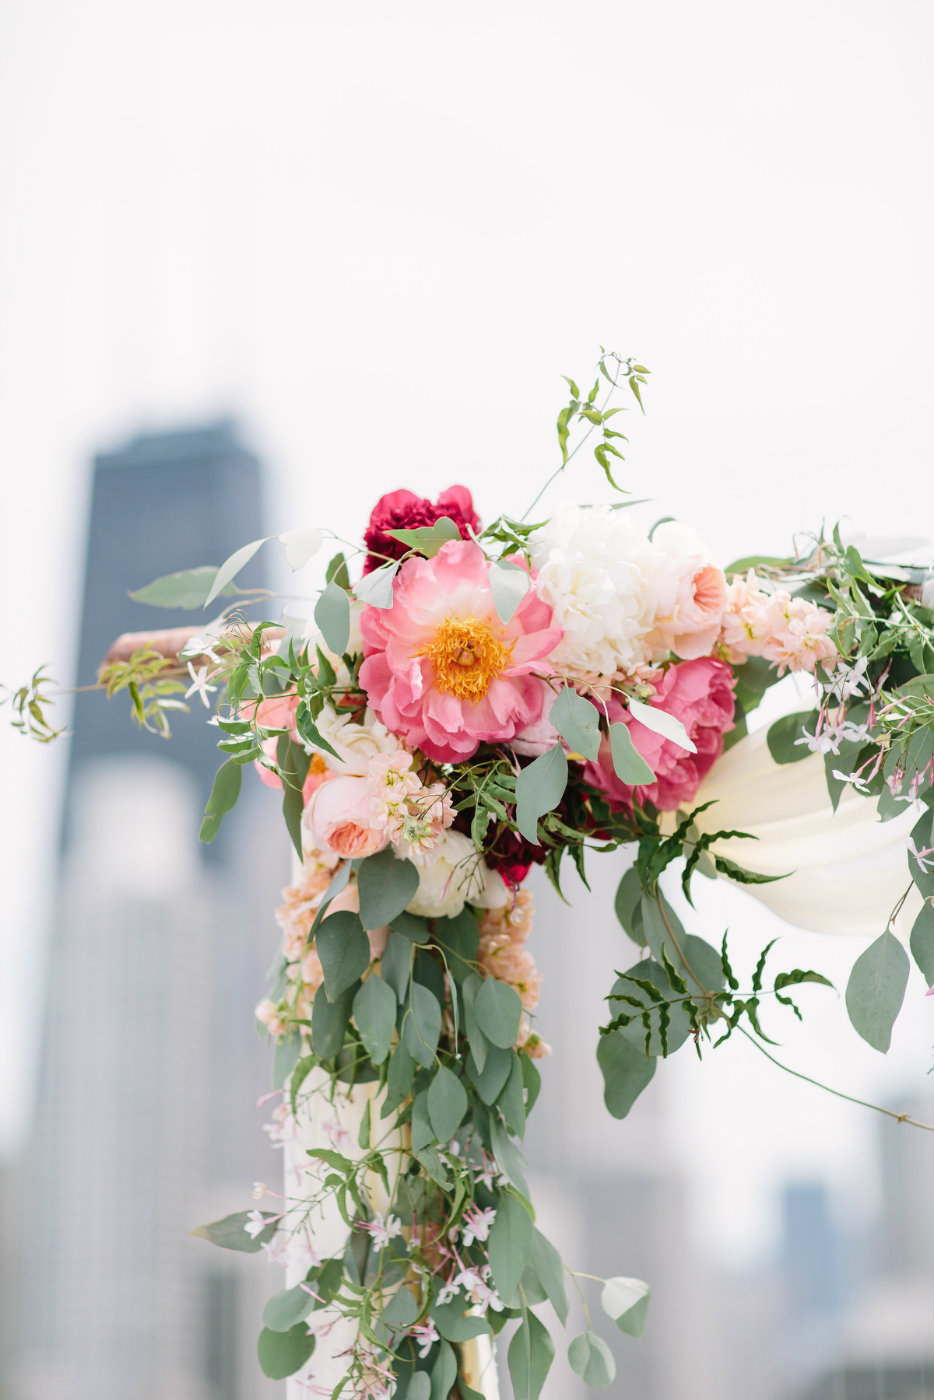 life_in_bloom_chicago_wedding_florist_and_event_designer_public_hotel_4